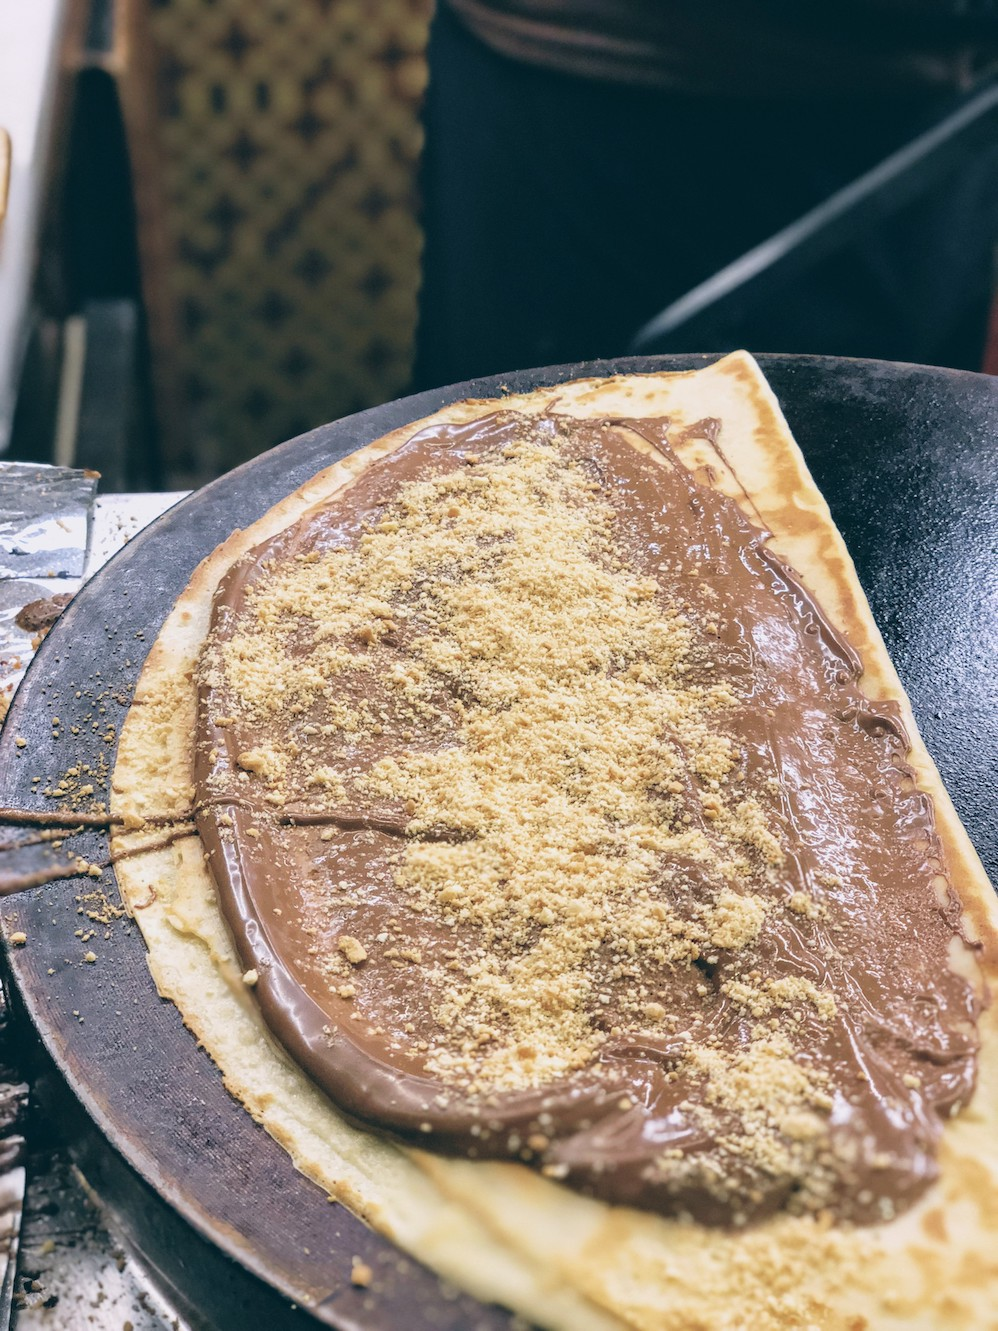 Nutella crepes with sprinkled biscuit crumbs at Krepilateion